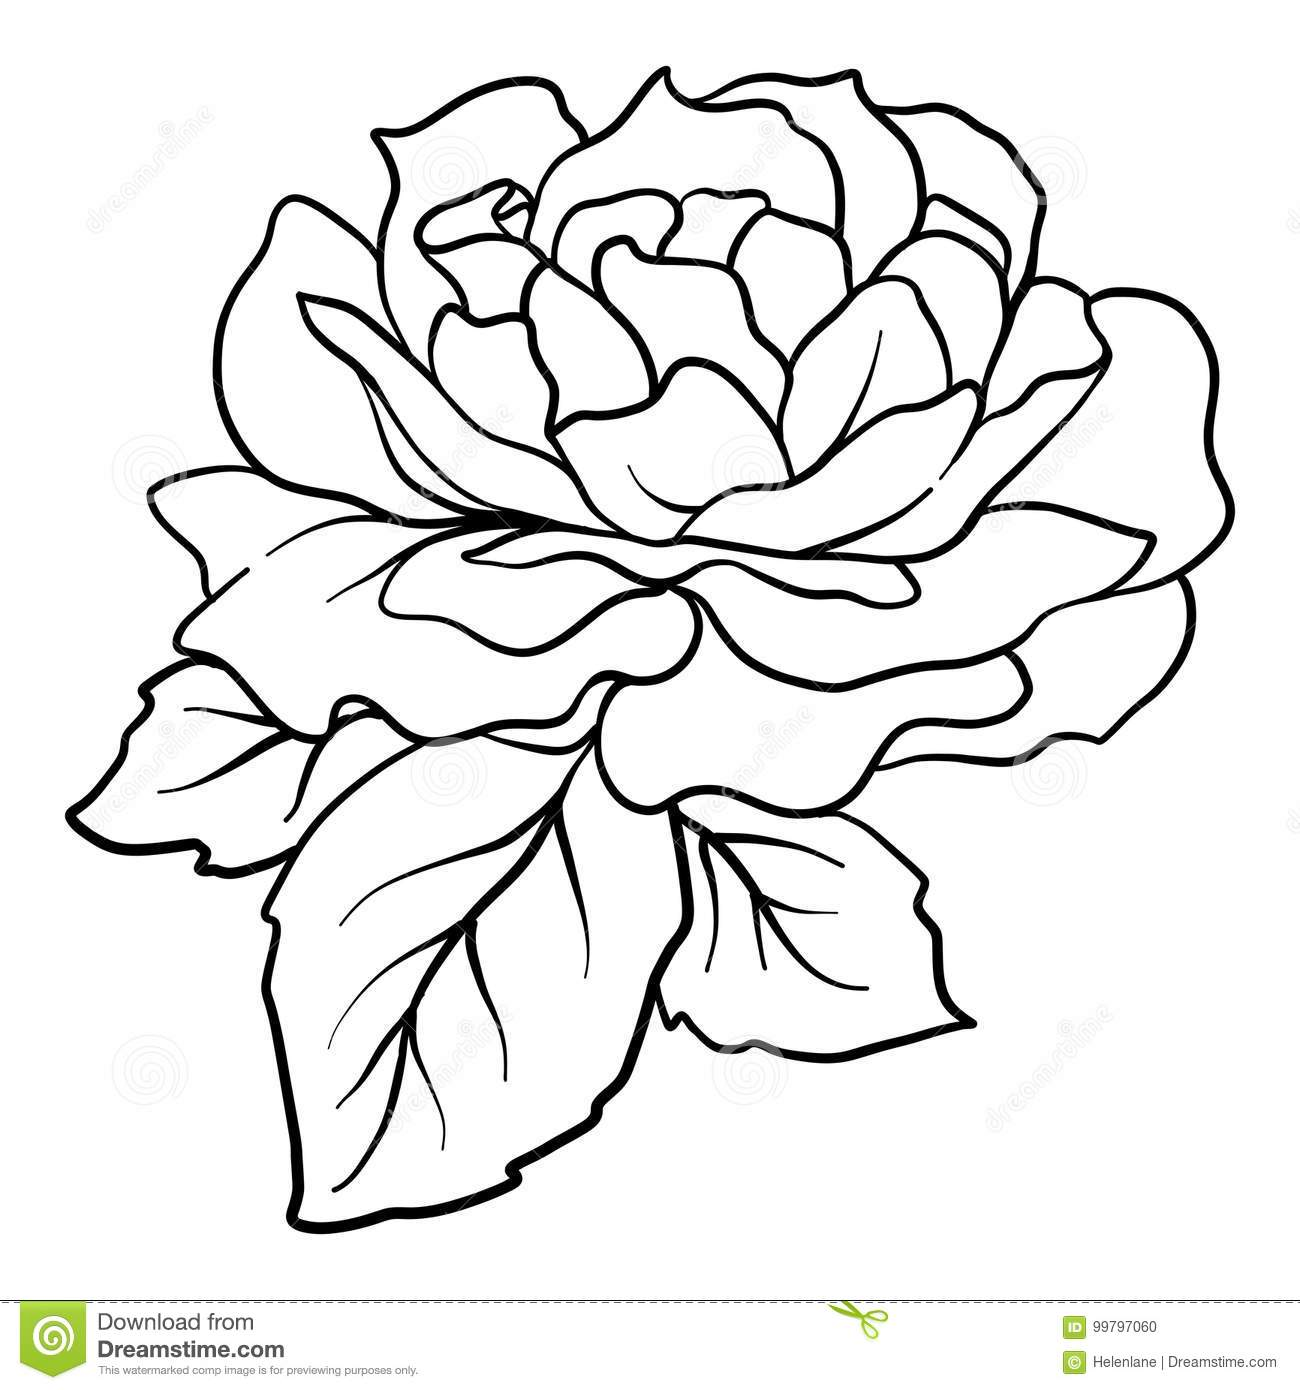 Isolated rose outline drawing stock line vector illustration